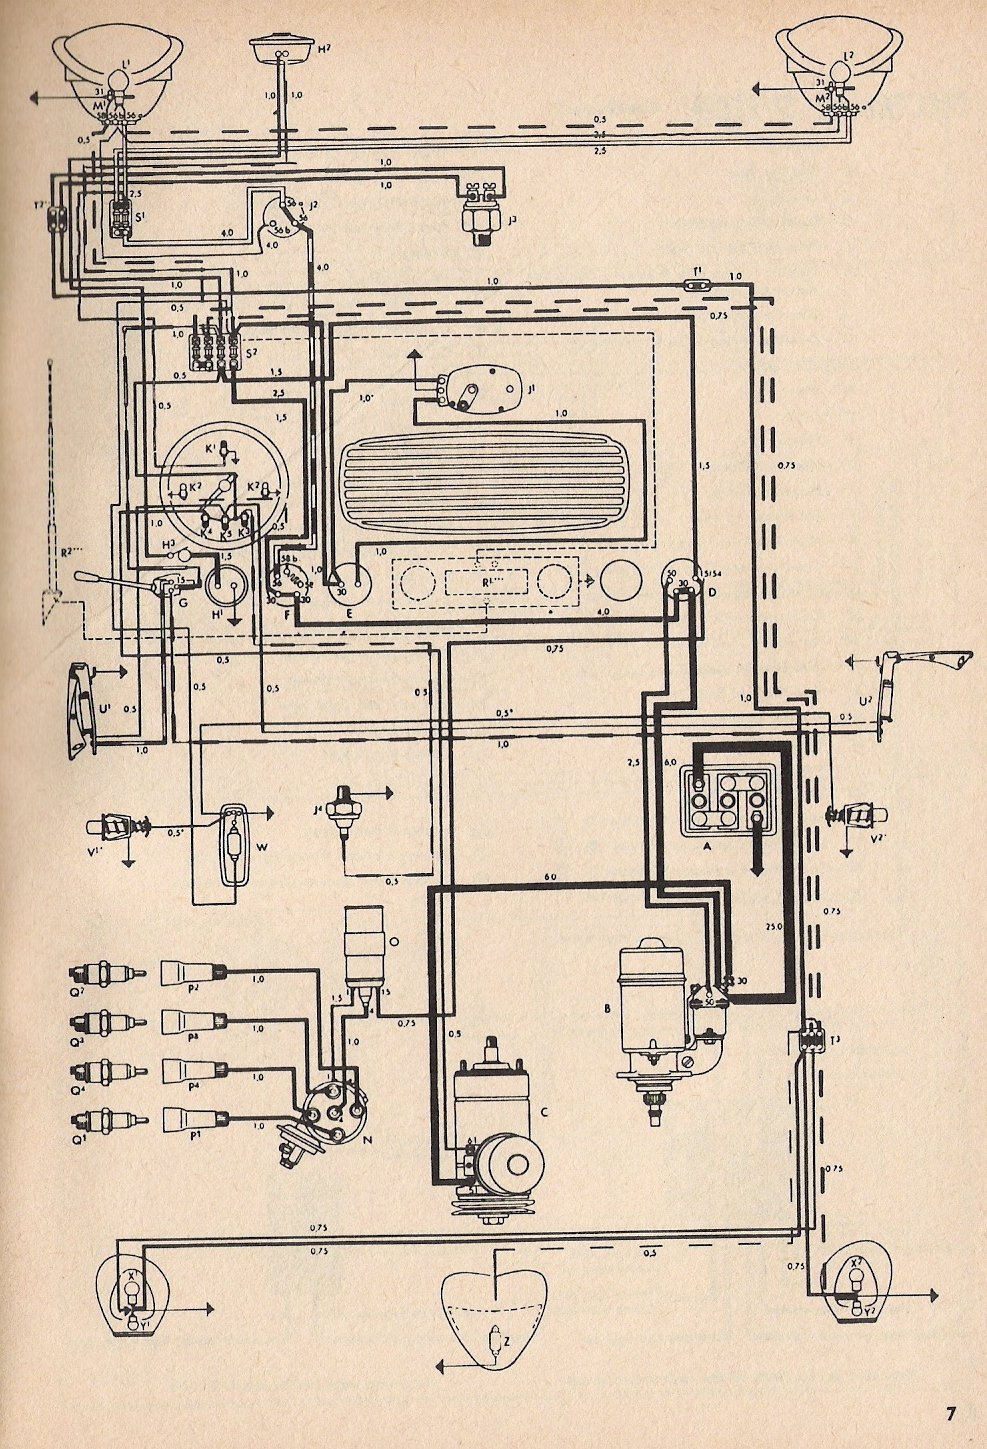 Type 1 Wiring Diagrams 2004 Thomas Bus